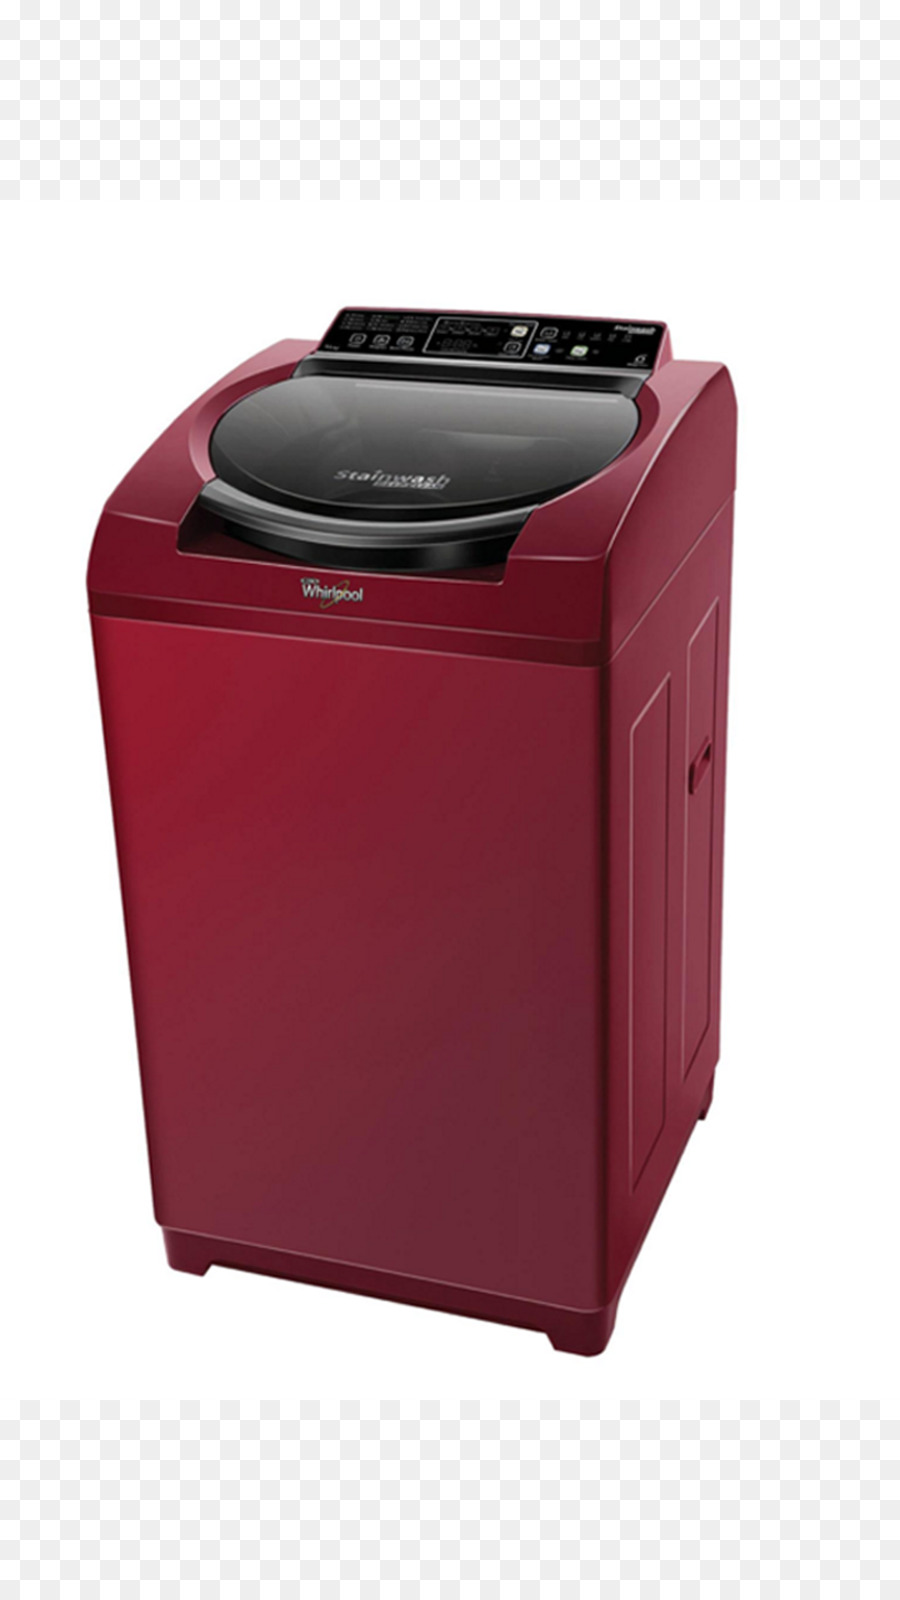 Attrayant Washing Machines Bathtub India Bathroom Whirlpool Corporation   Washing  Machine